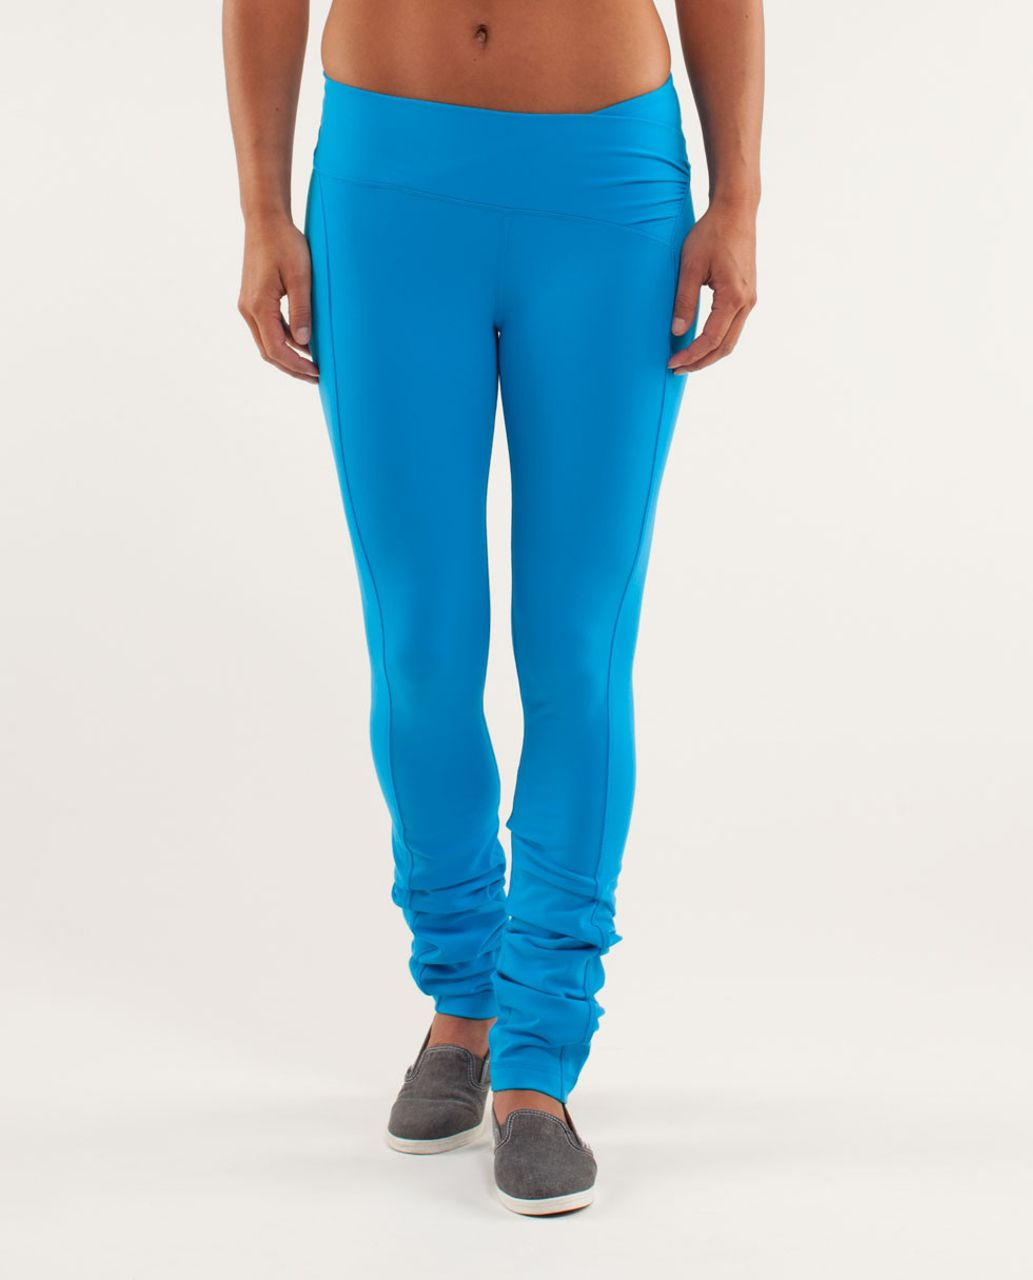 Lululemon Presence Pant (Regular) - Beach Blanket Blue